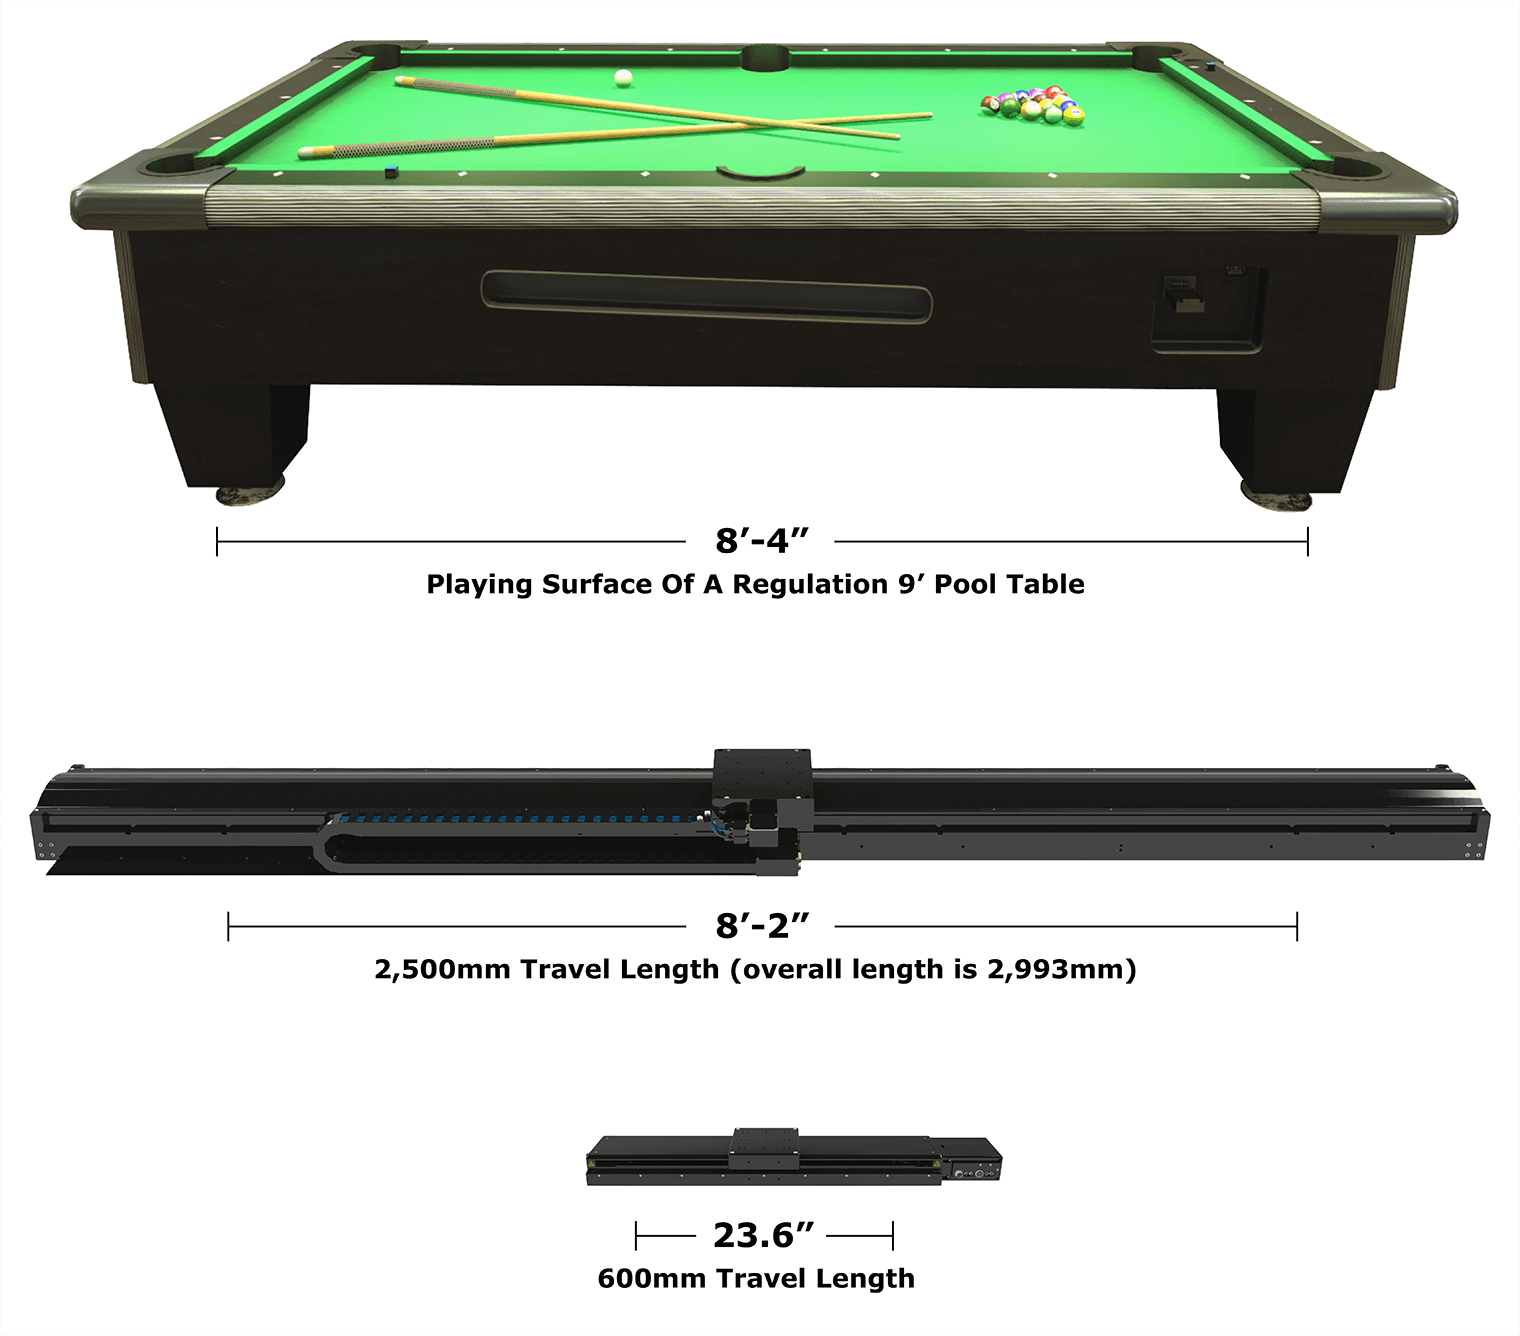 Illustration comparing the length of a 2,500mm travel stage to a 9 foot pool table and a 600mm travel stage